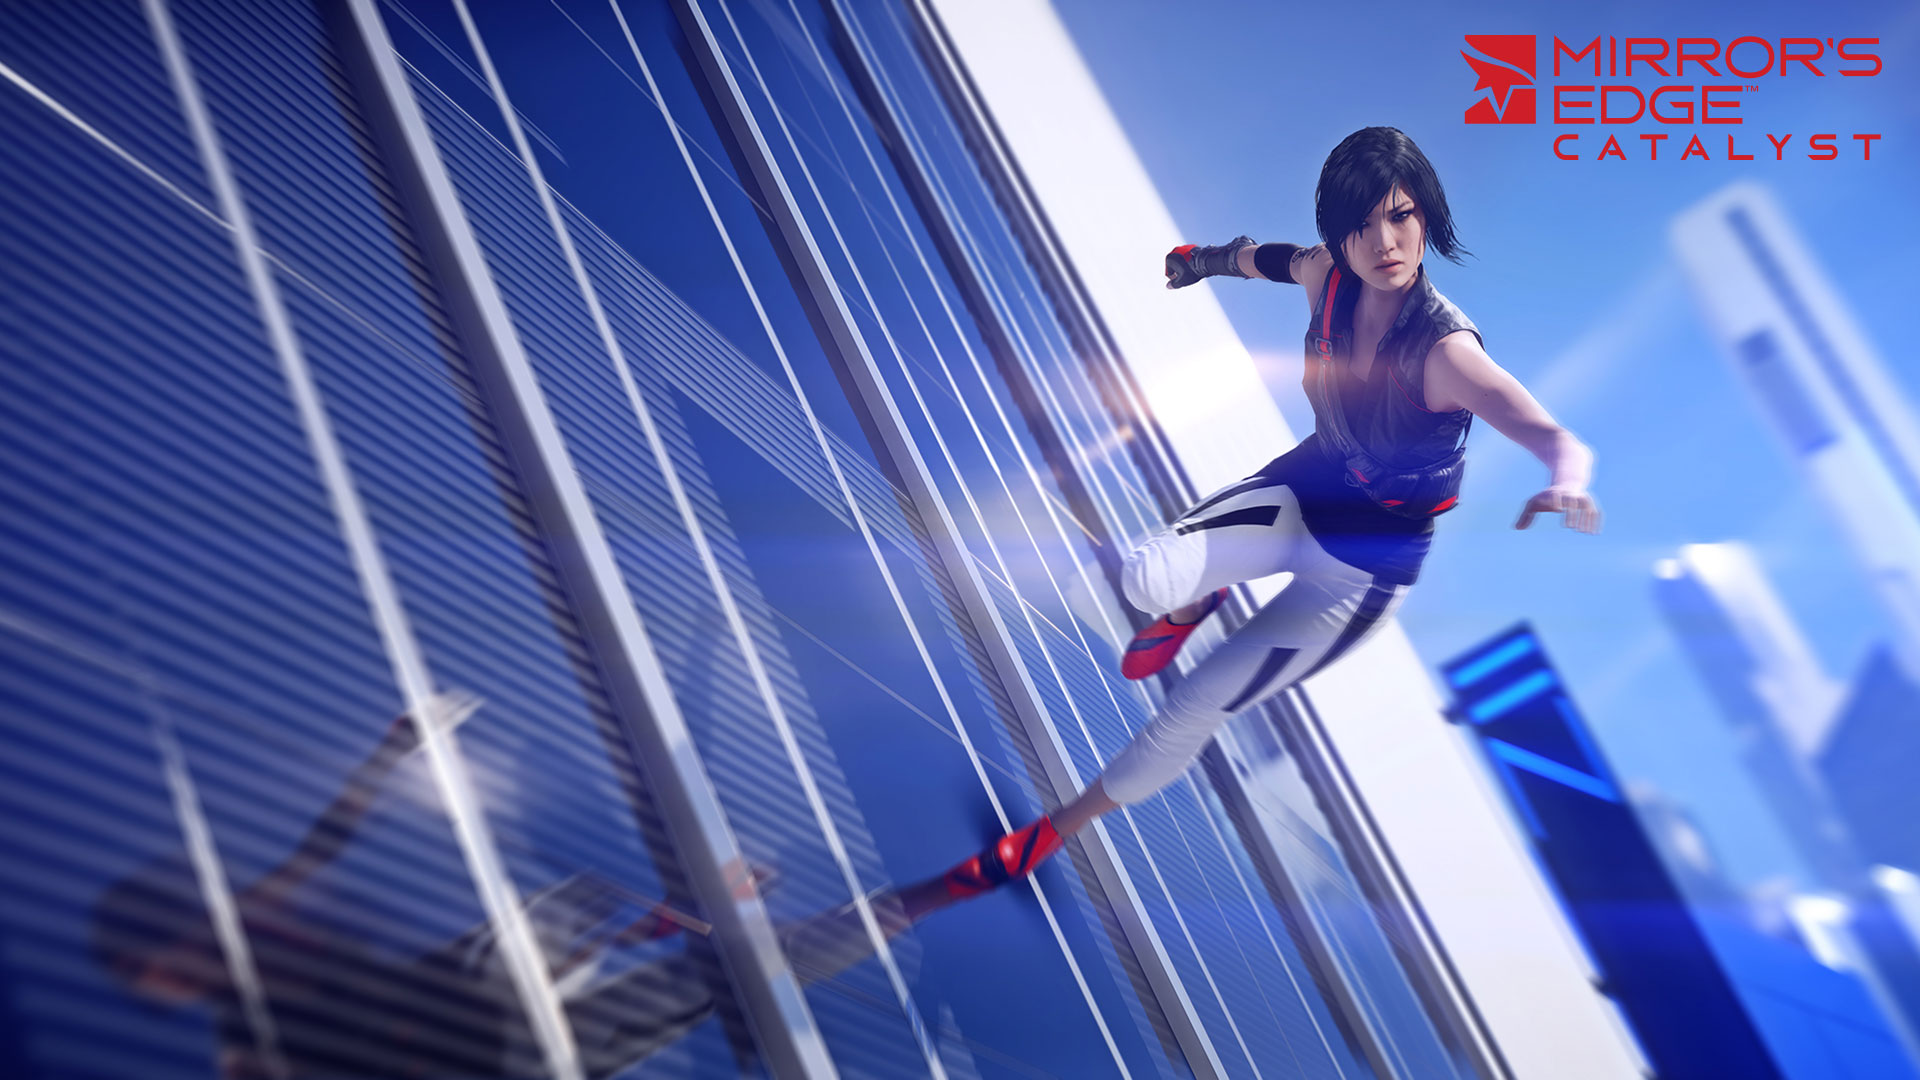 Mirror's Edge Catalyst Wallrun